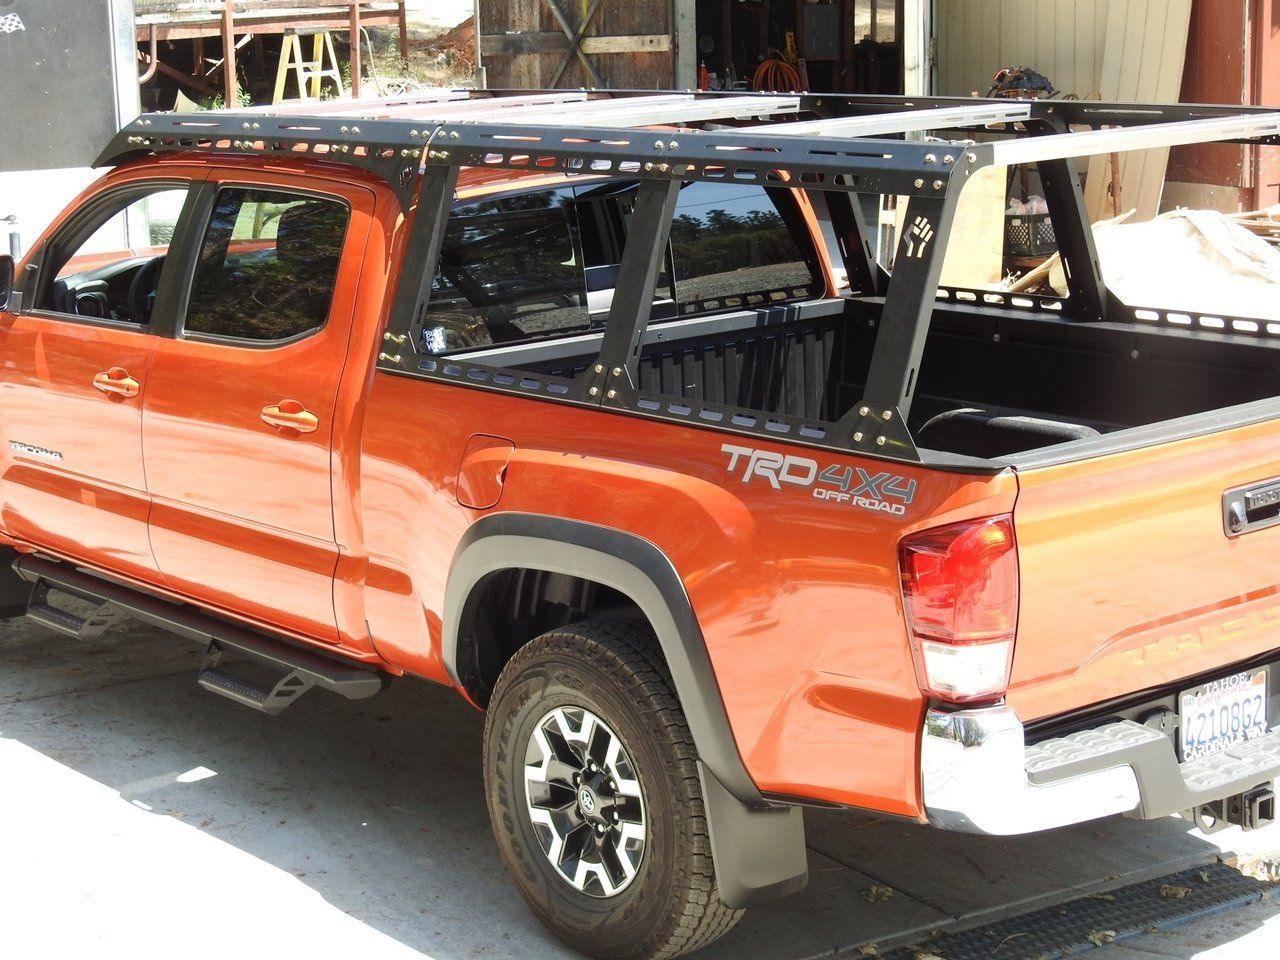 Dissent offroad racks on my Tacoma | Tacoma camp | Truck accessories